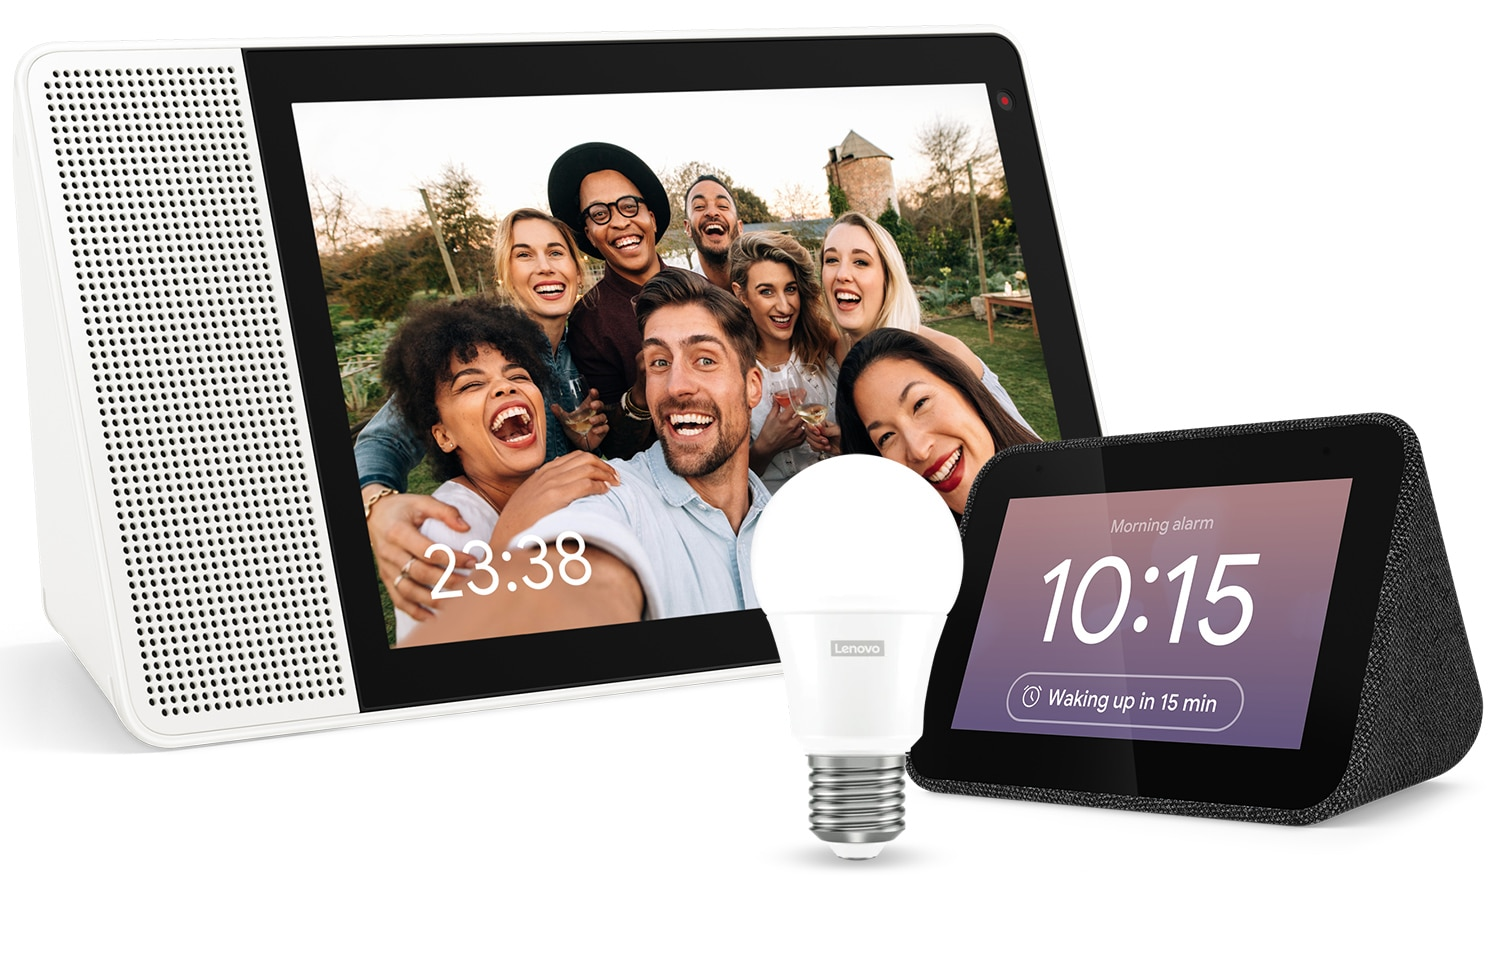 Lenovo Smart Home Products with Lenovo Smart Tab